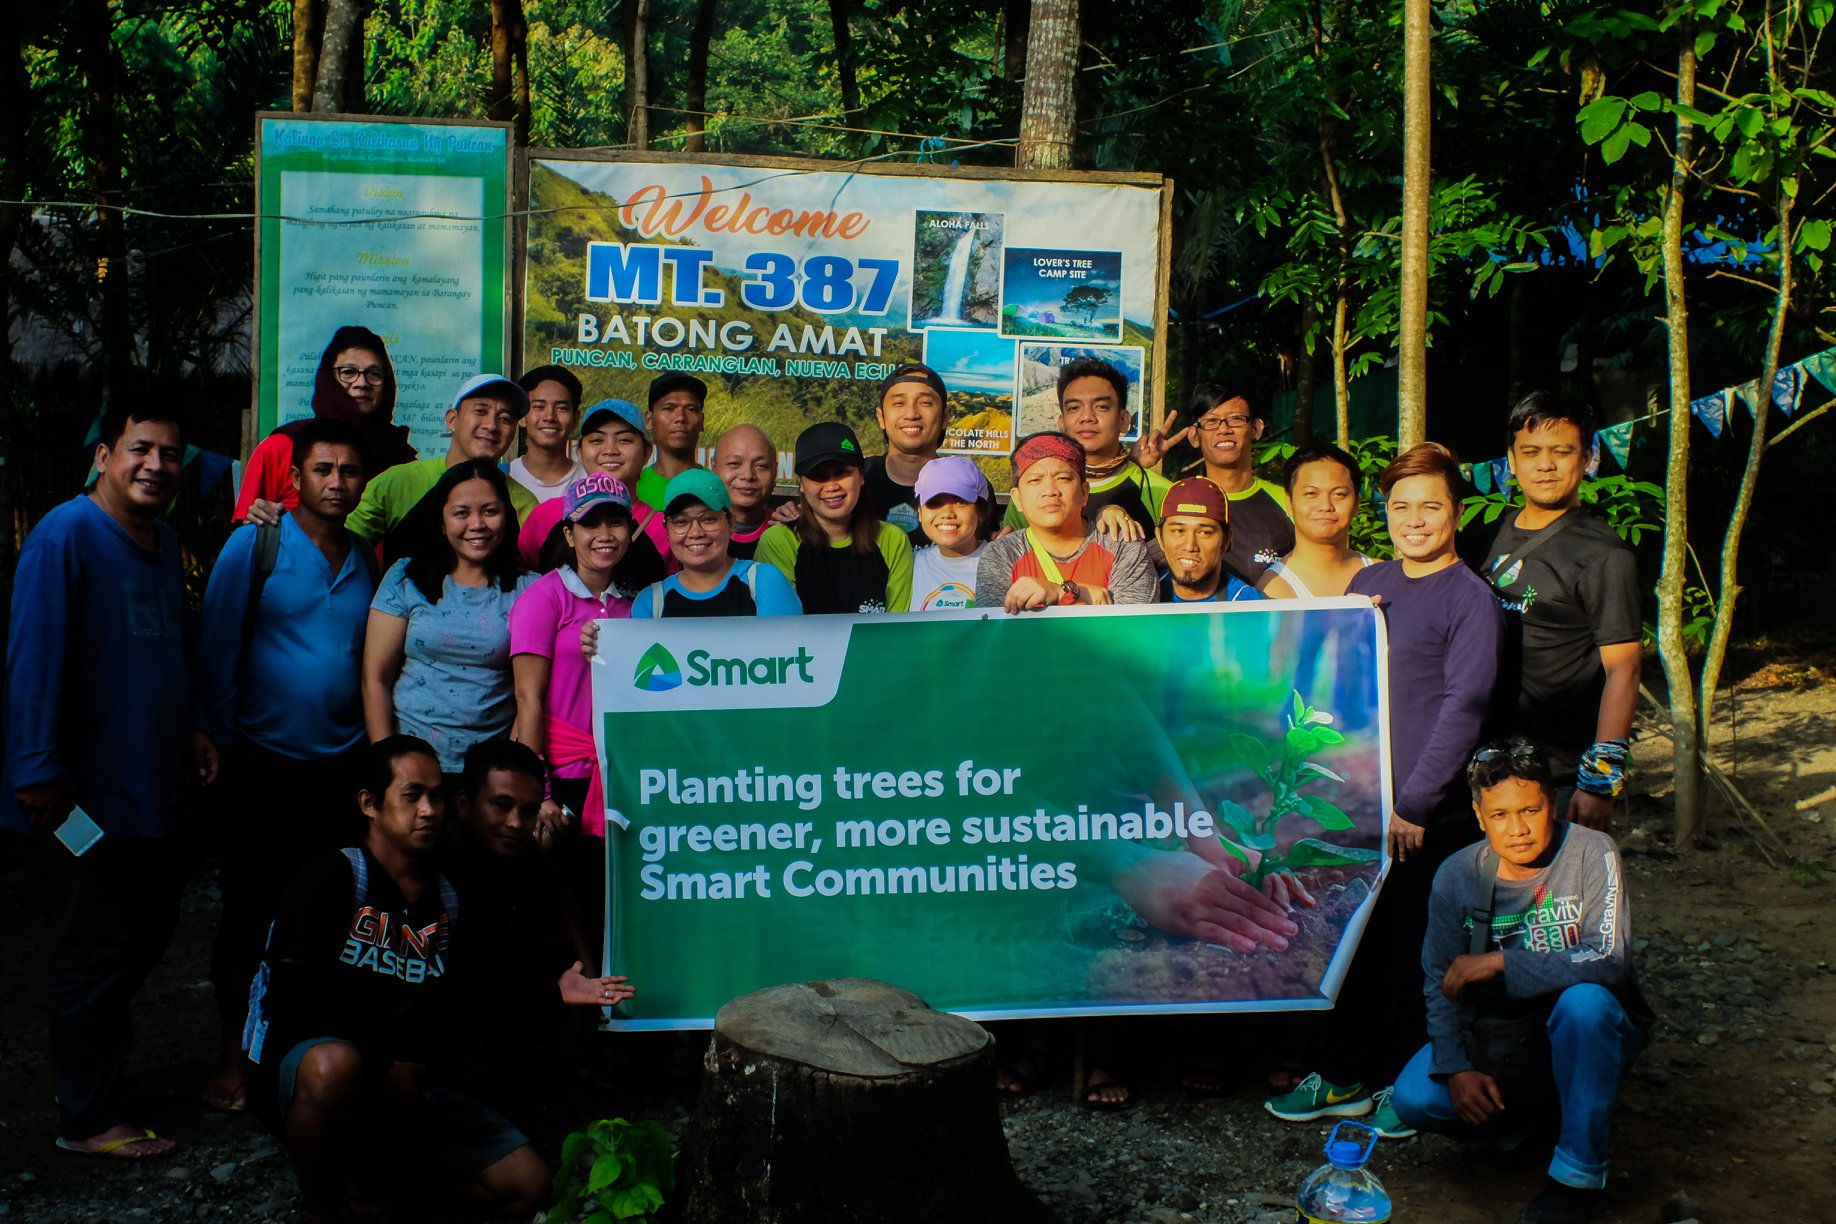 Smart employees lead tree-planting activity in Nueva Ecija